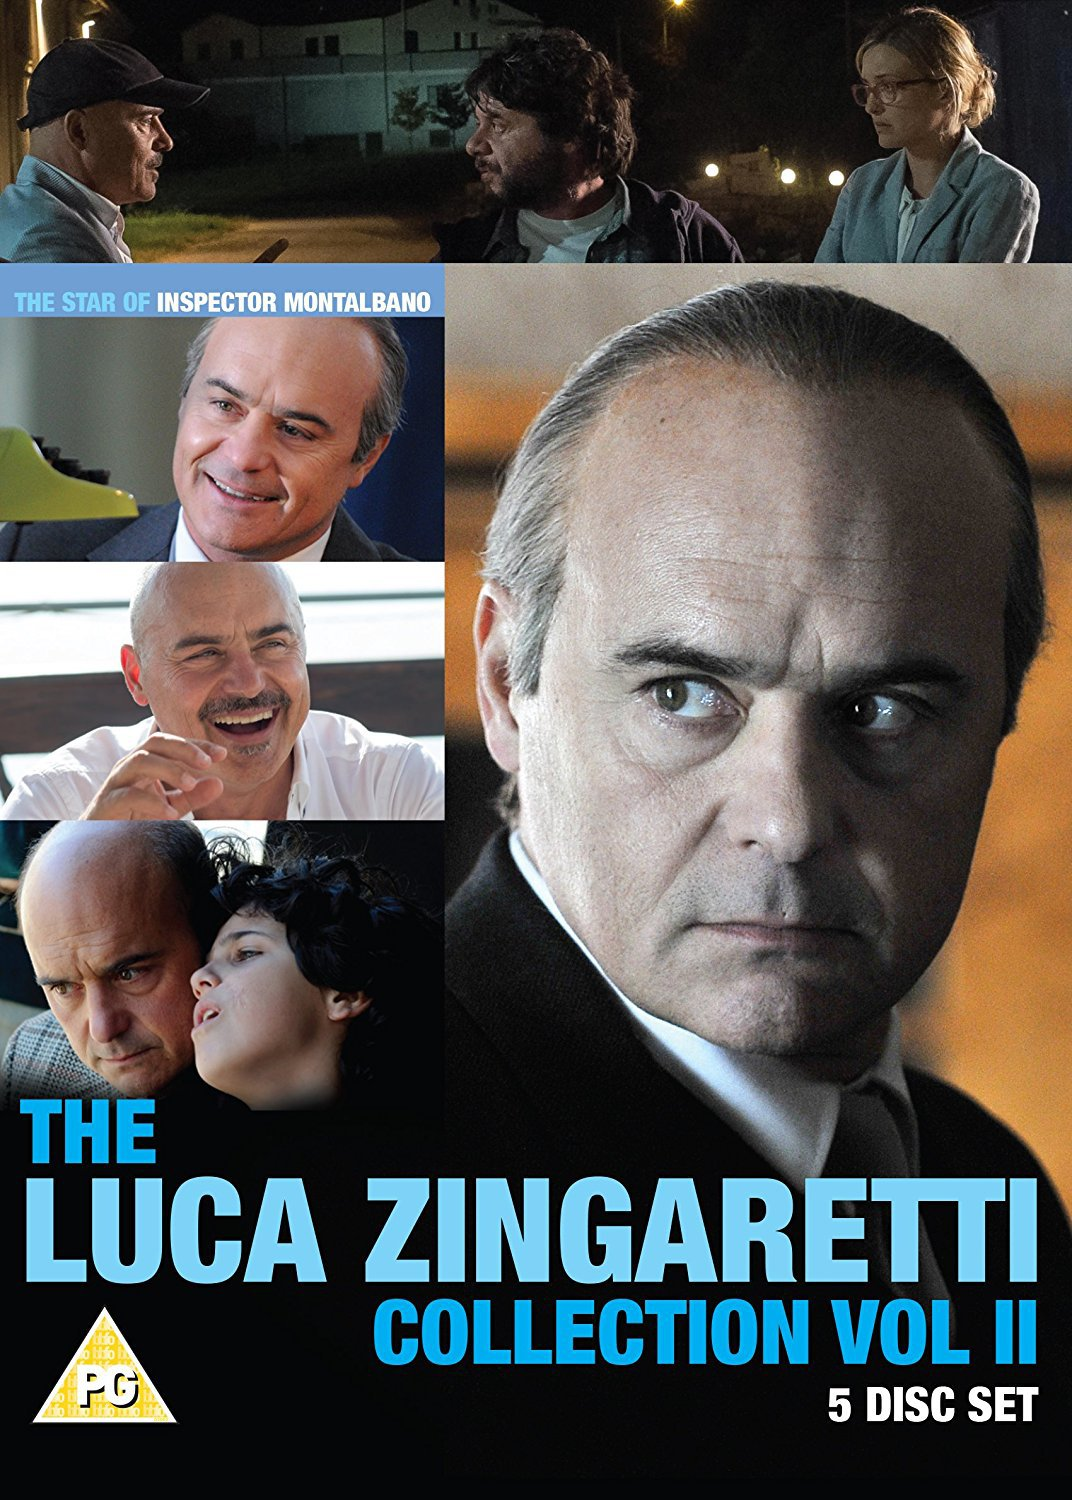 The Luca Zingaretti Collection: Volume II